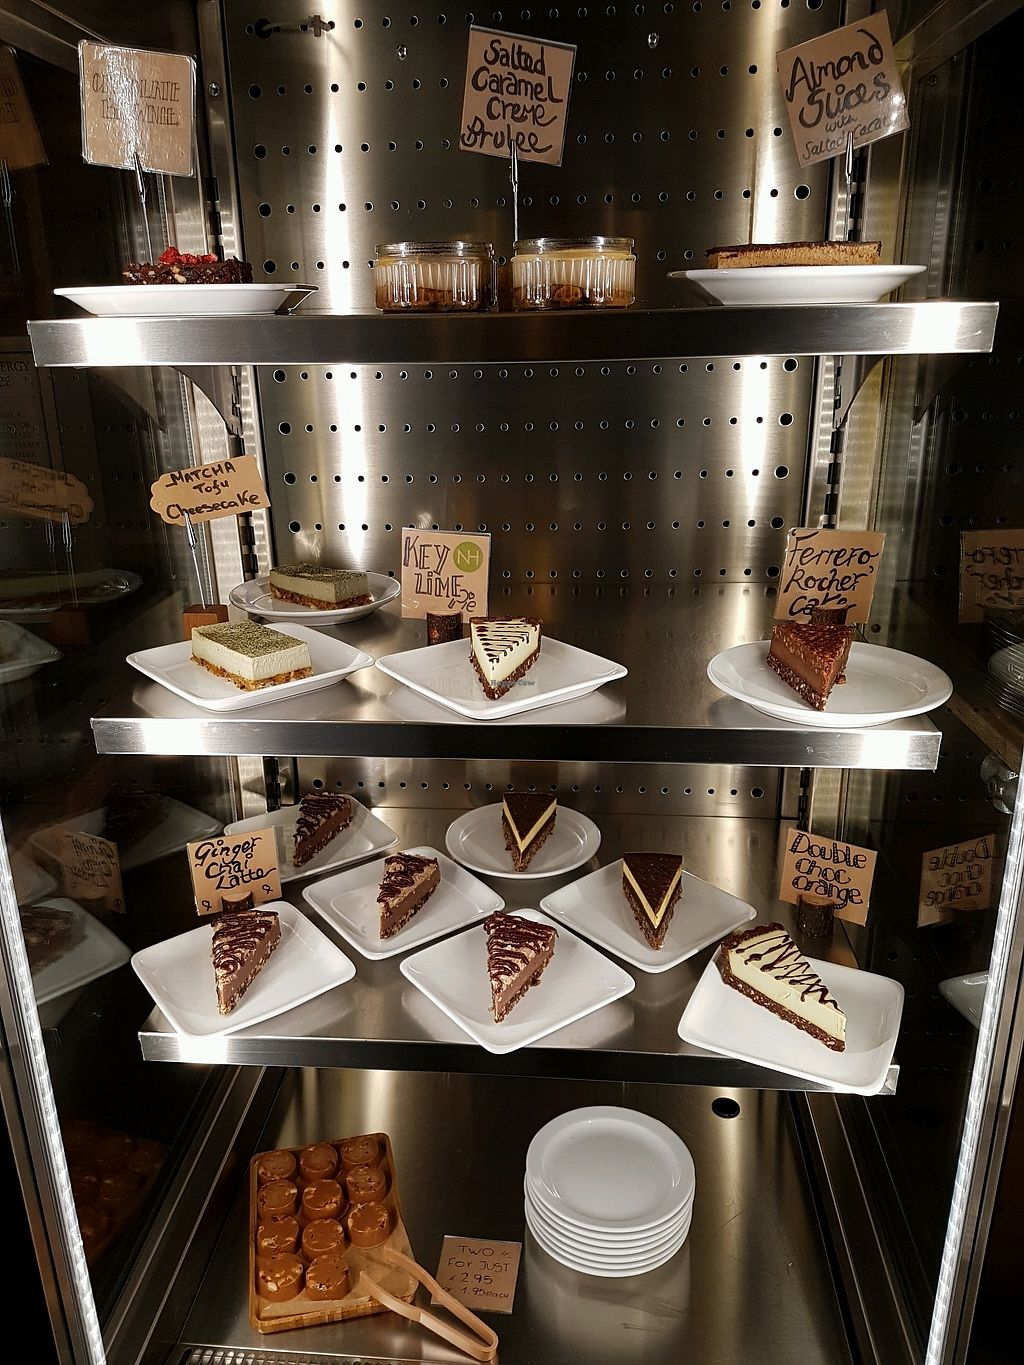 """Photo of Natural Healthy Foods Eatery  by <a href=""""/members/profile/Hoggy"""">Hoggy</a> <br/>Assortment of desserts <br/> January 12, 2018  - <a href='/contact/abuse/image/89849/345685'>Report</a>"""